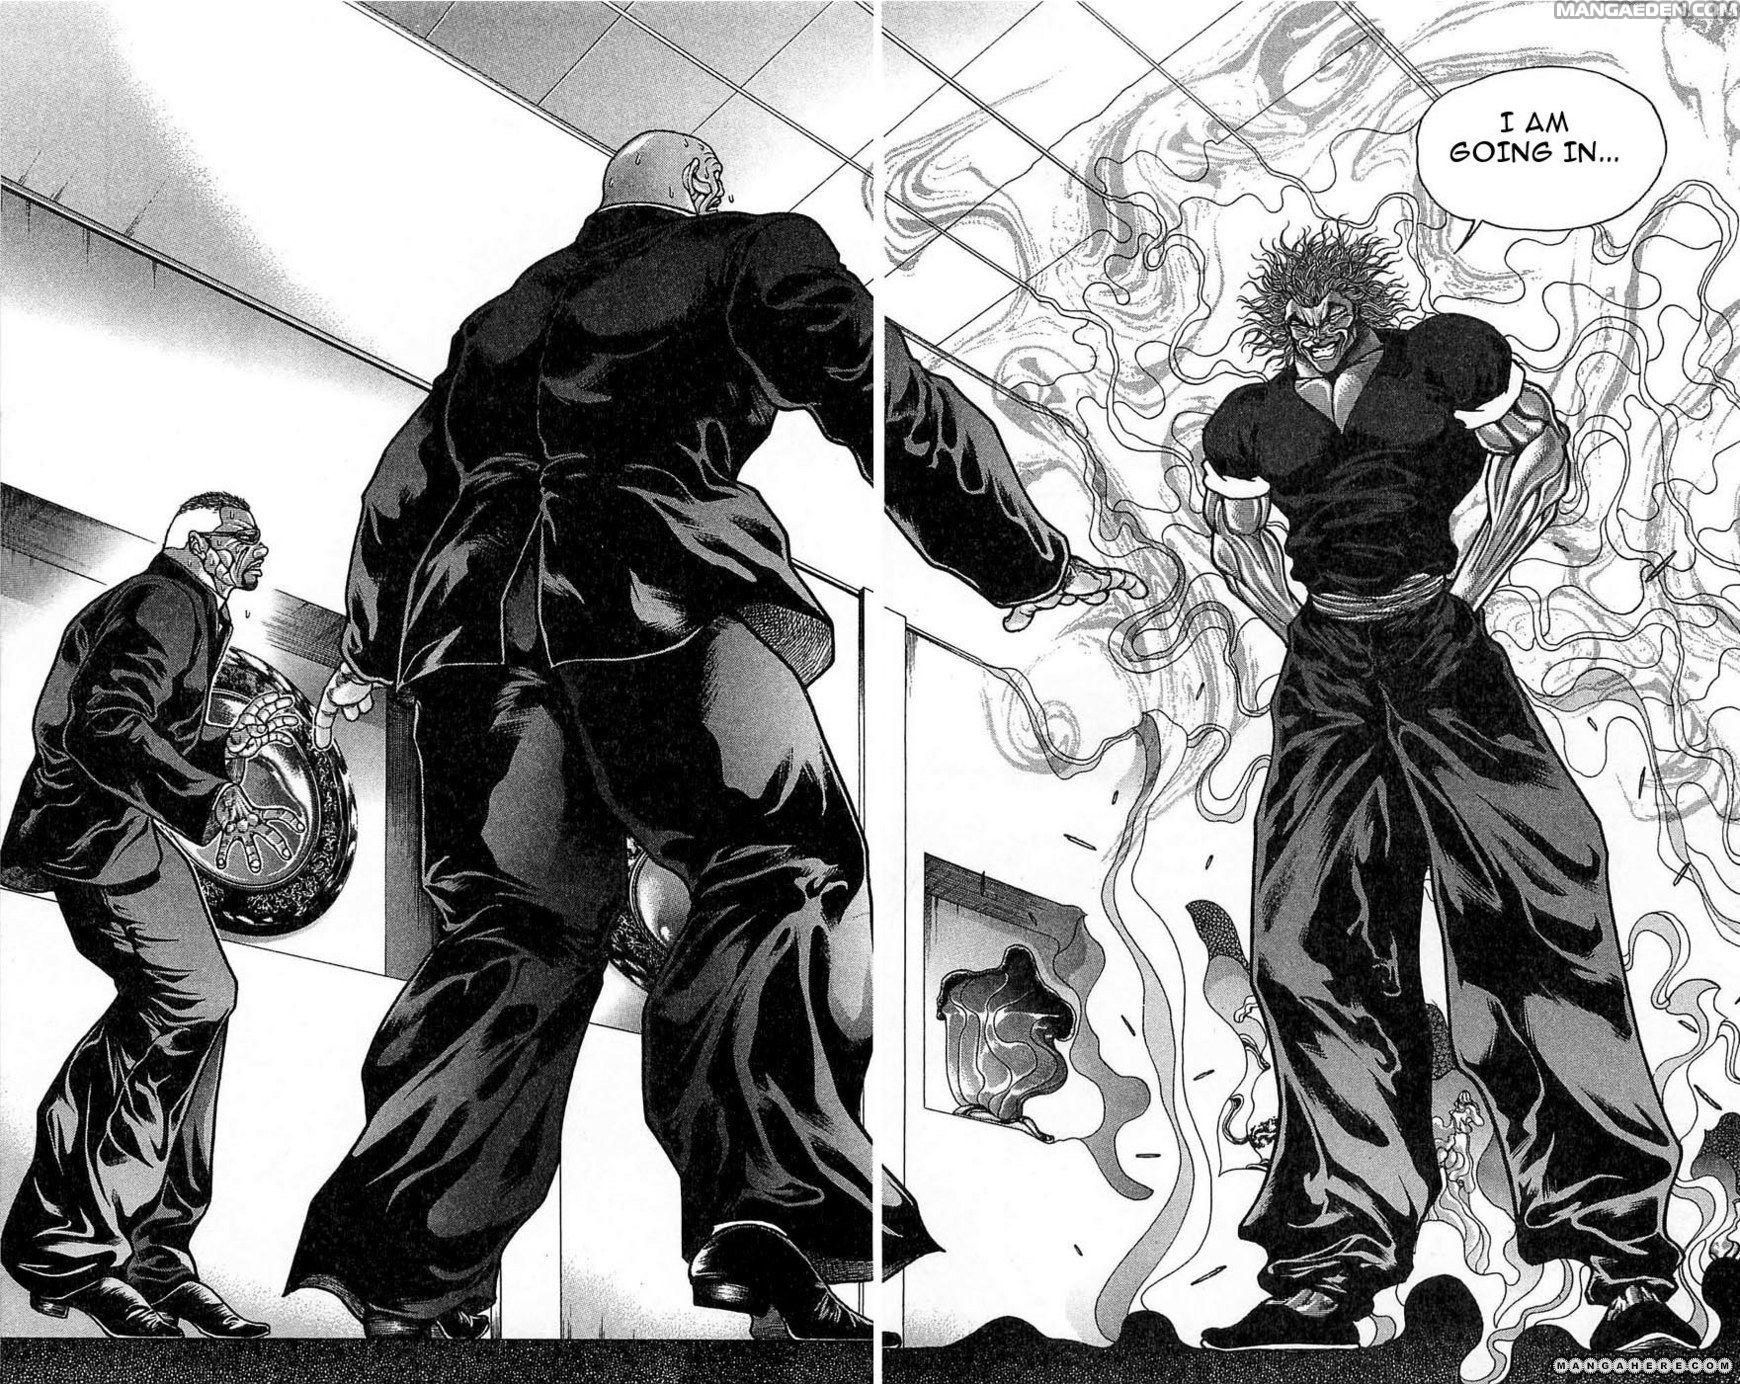 Baki New Grappler Manga Grappler Manga